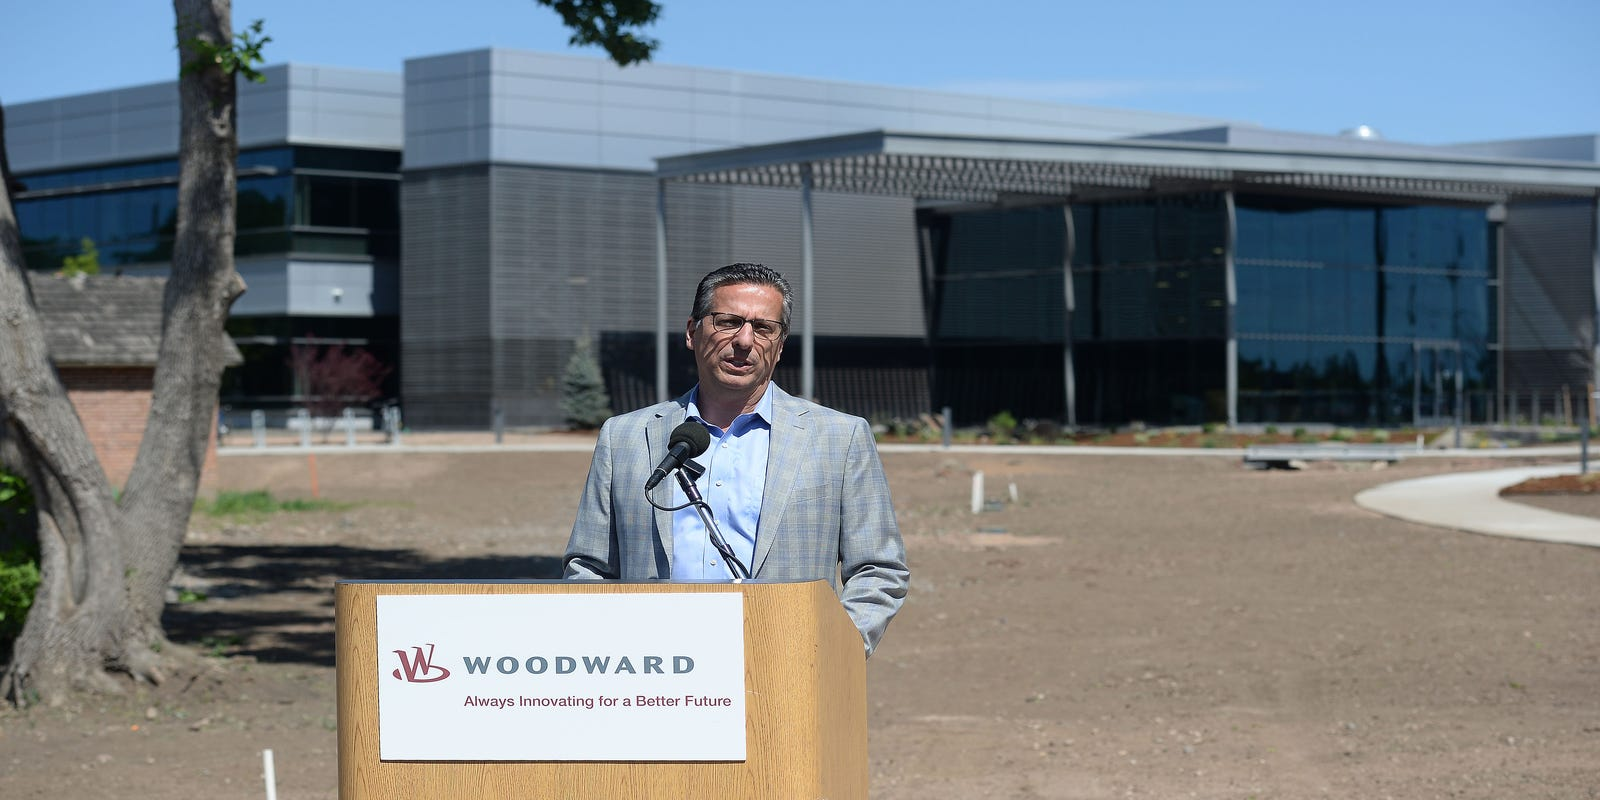 Woodward announces major merger with Connecticut-based company